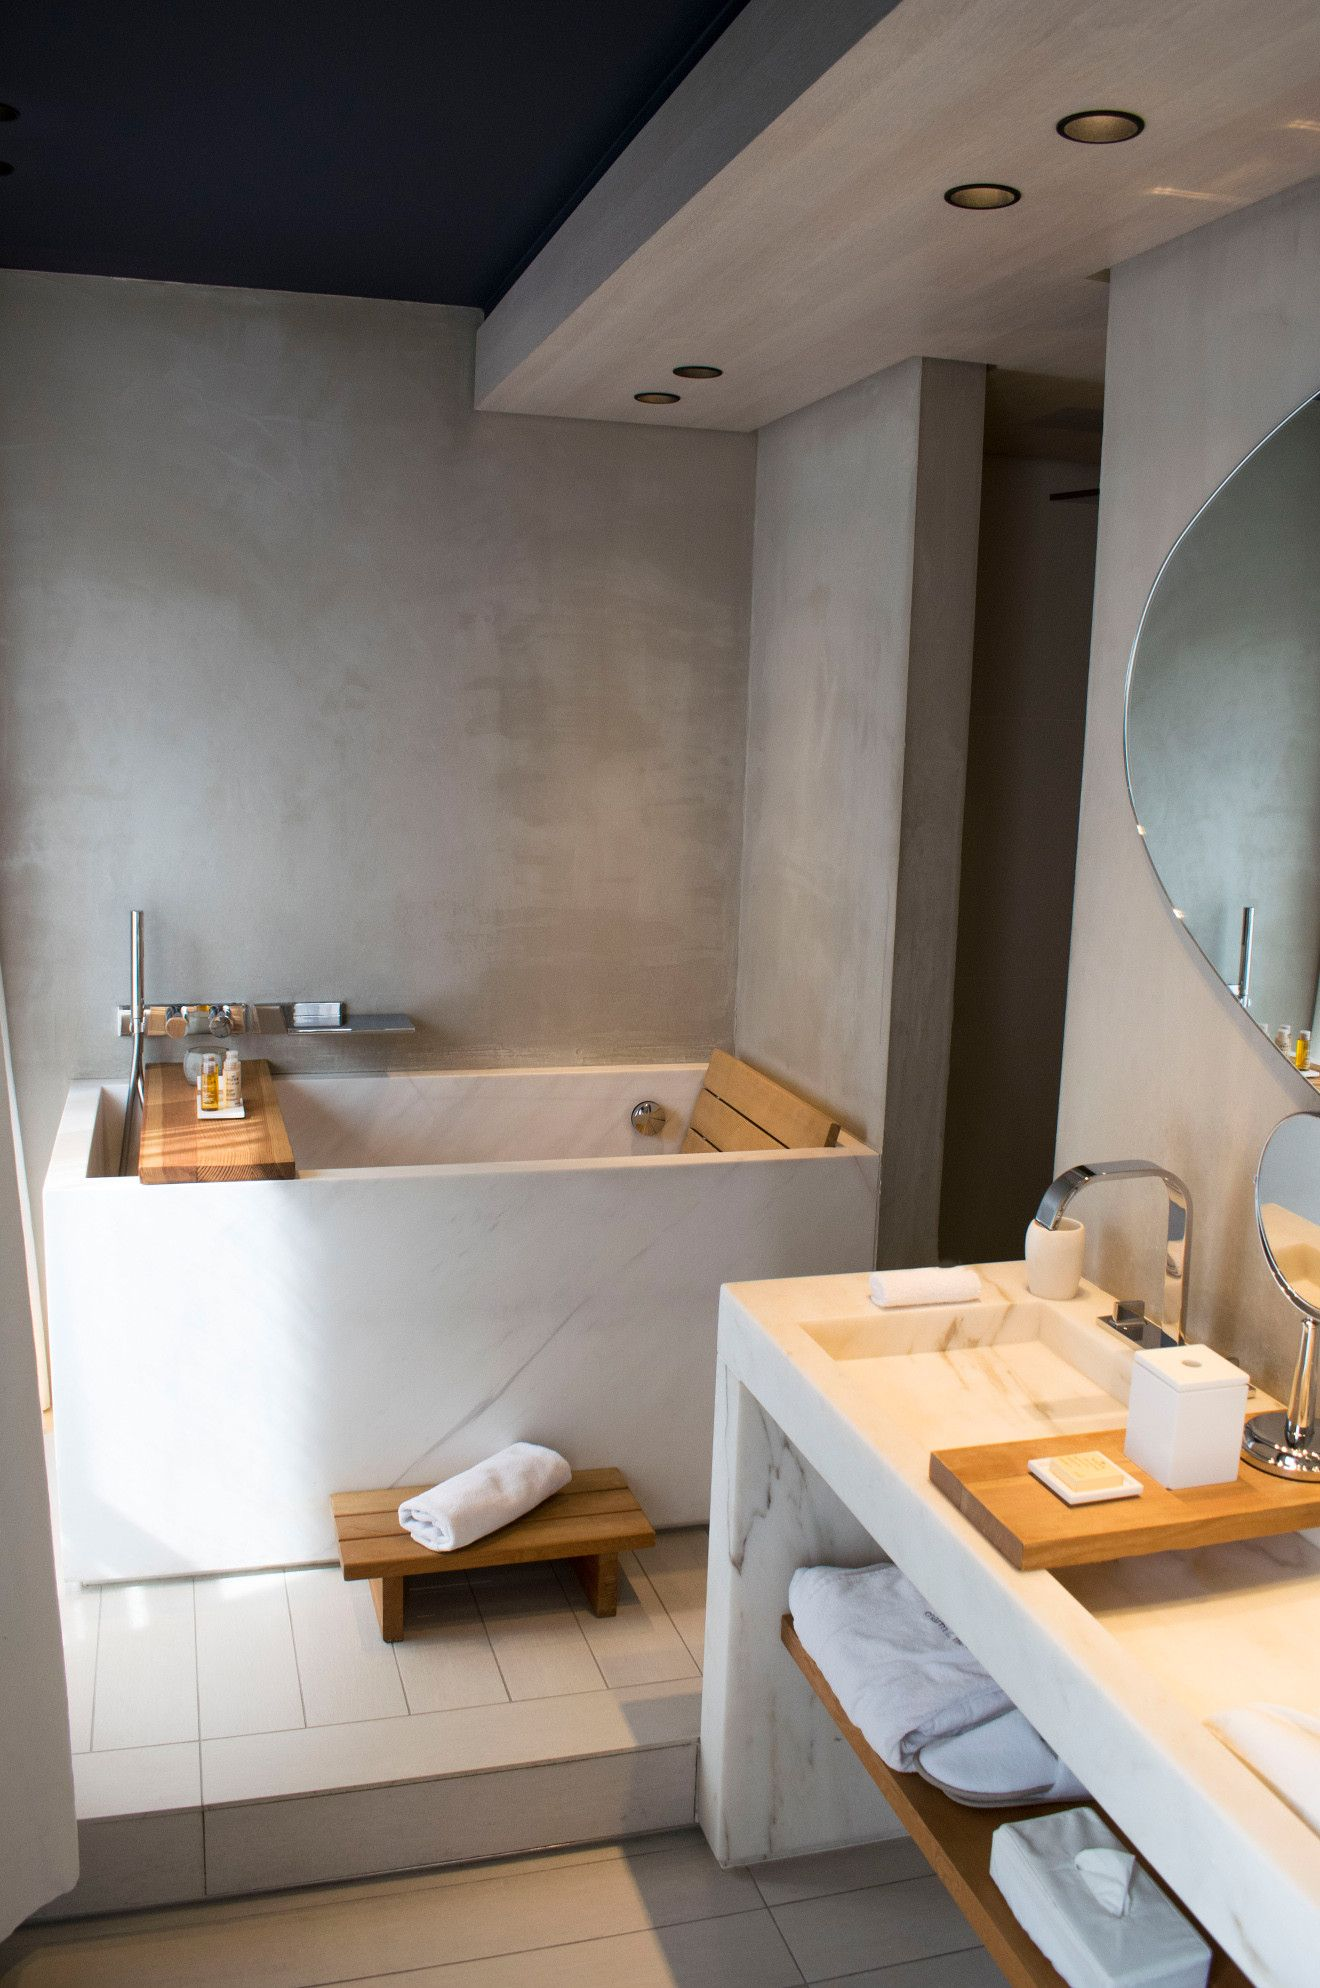 7 Star Hotel Rooms: Boutique Hotel Room, Japanese